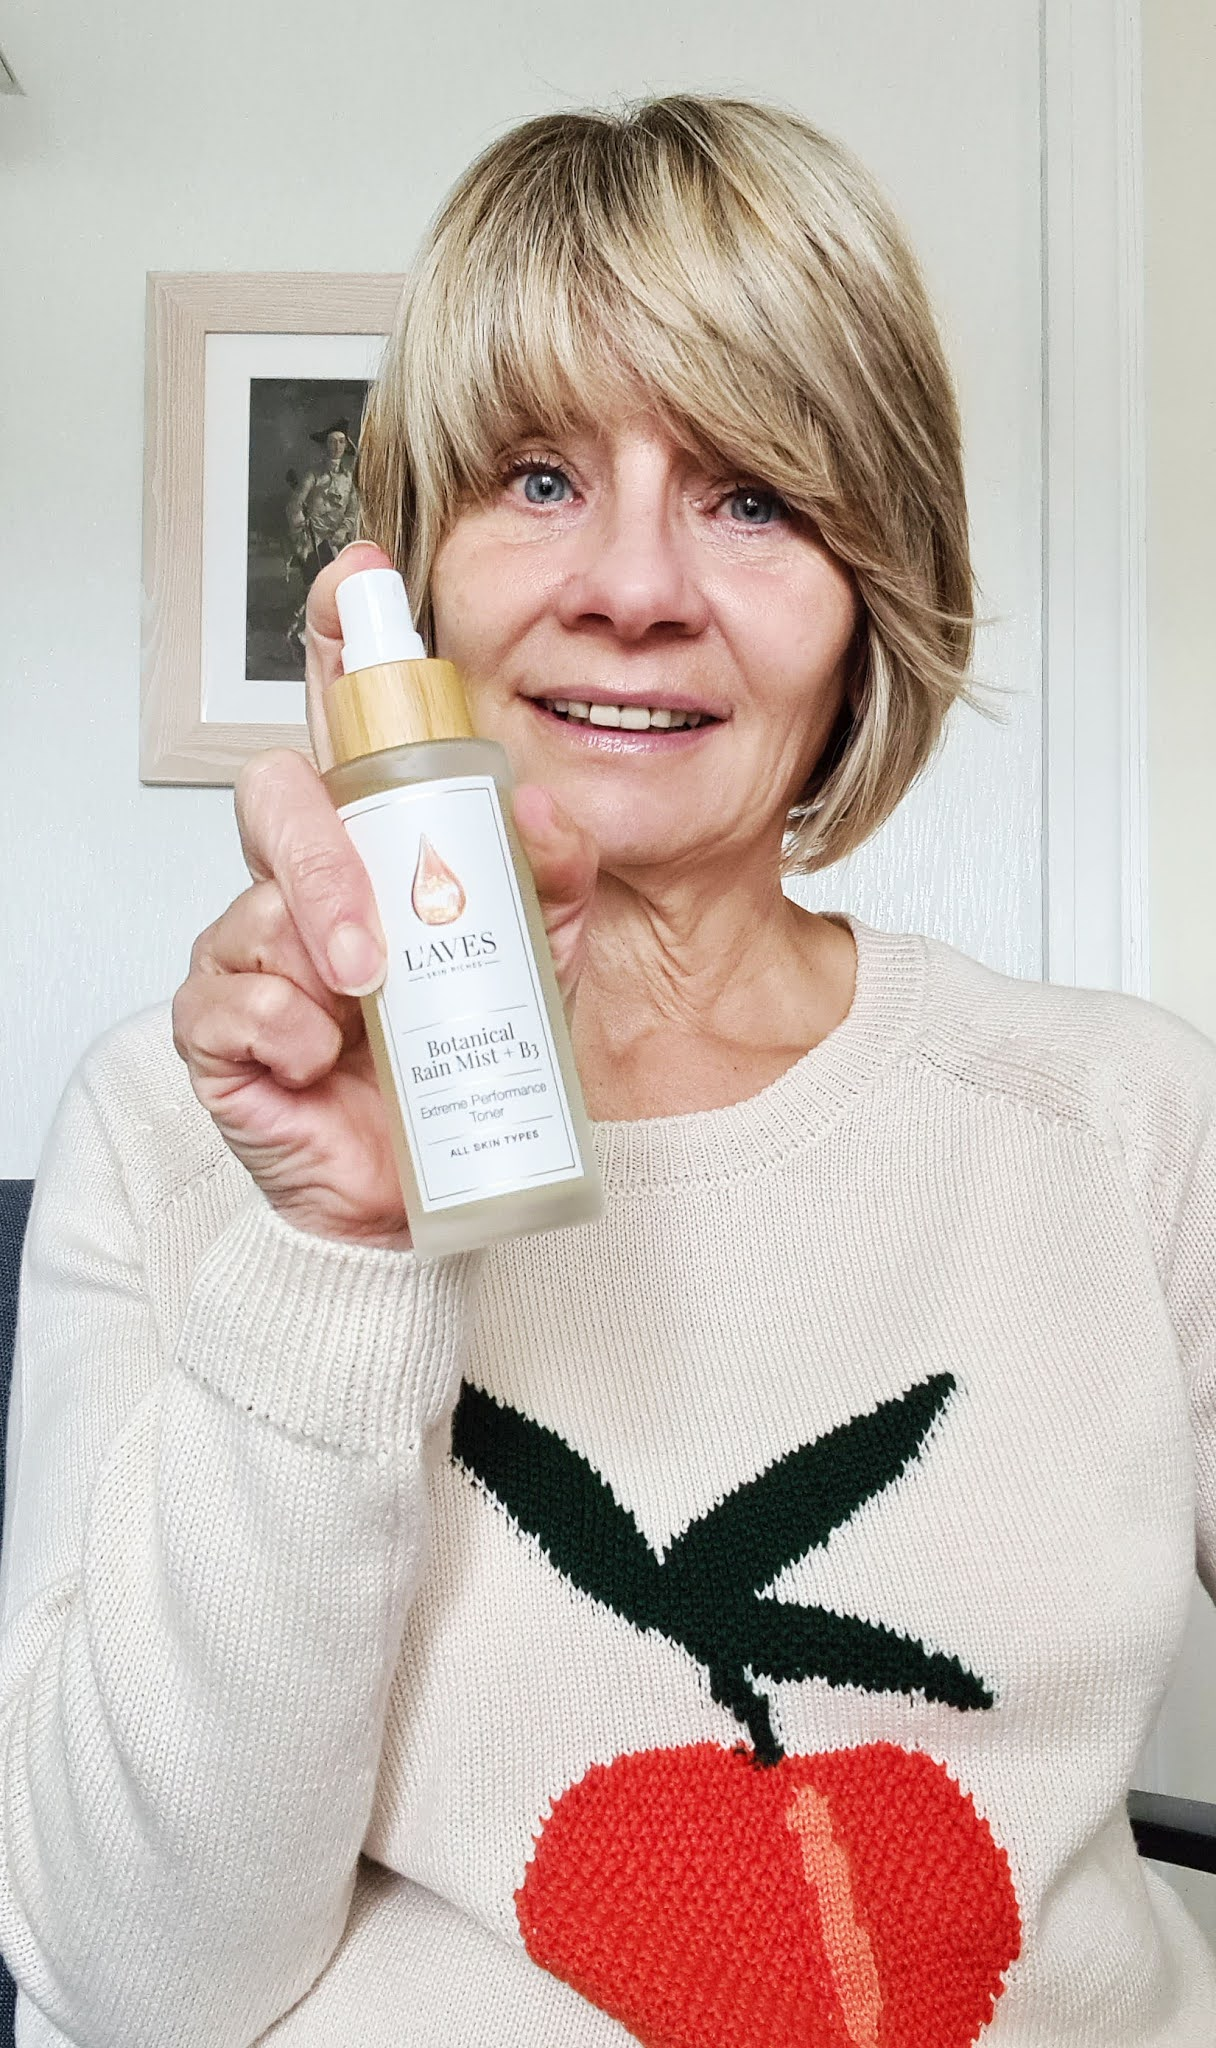 Gail Hanlon from Is This Mutton tries L'AVES's Botanical Rain Mist + B3 toner